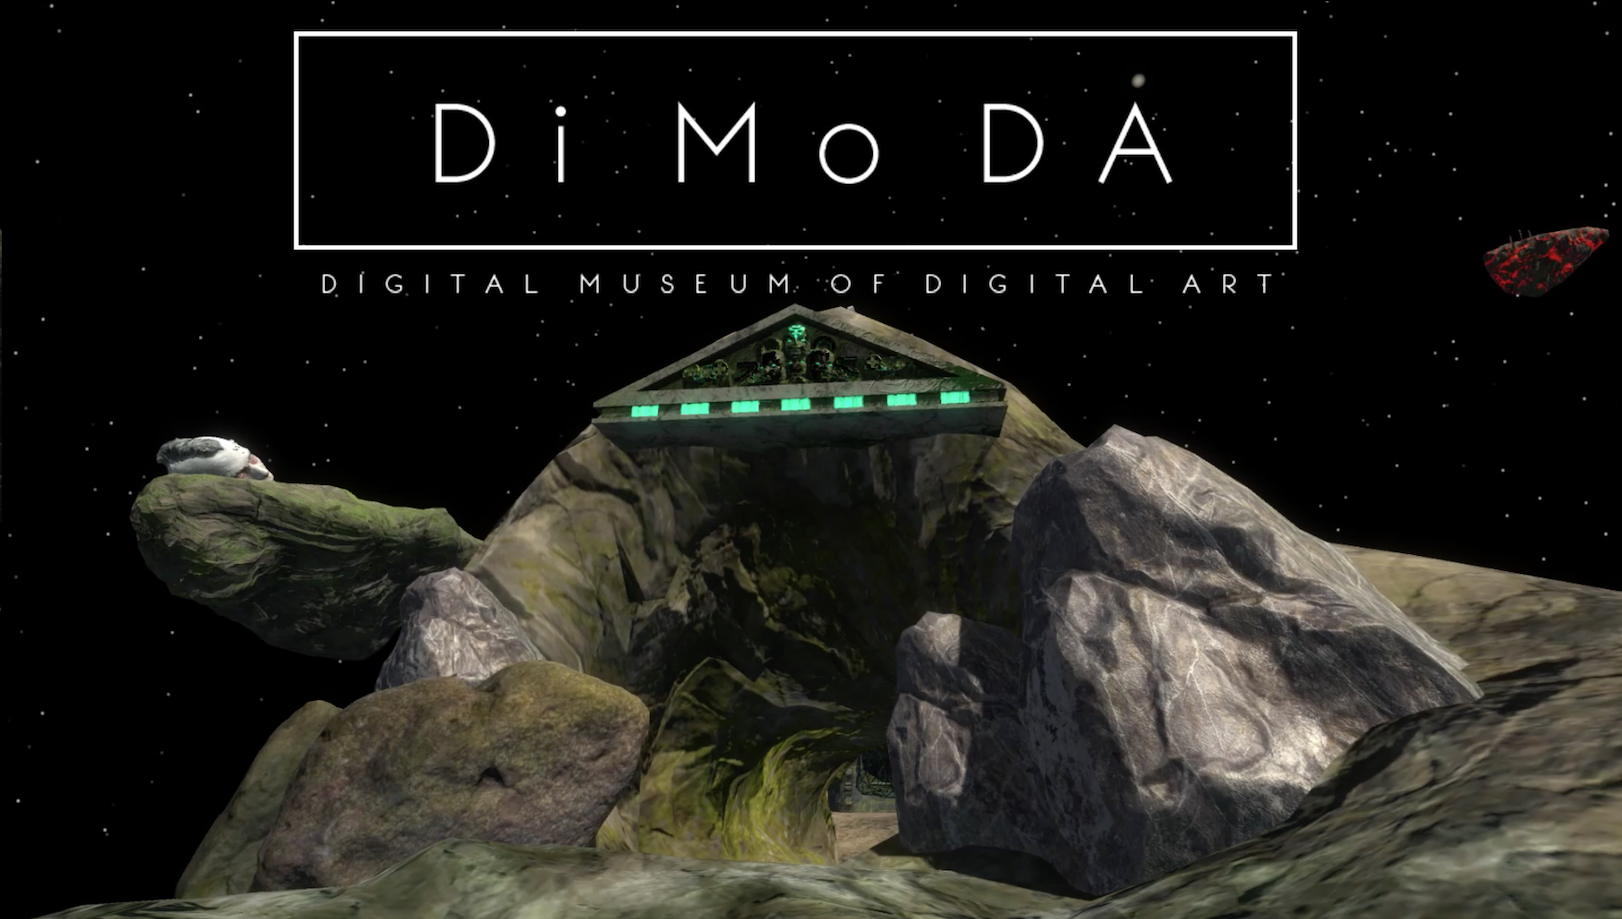 The Digital Museum of Digital Art by Alfredo Salazar-Caro and William Robertson, © the artists, courtesy of the artists and PRISKA PASQUER, Cologne